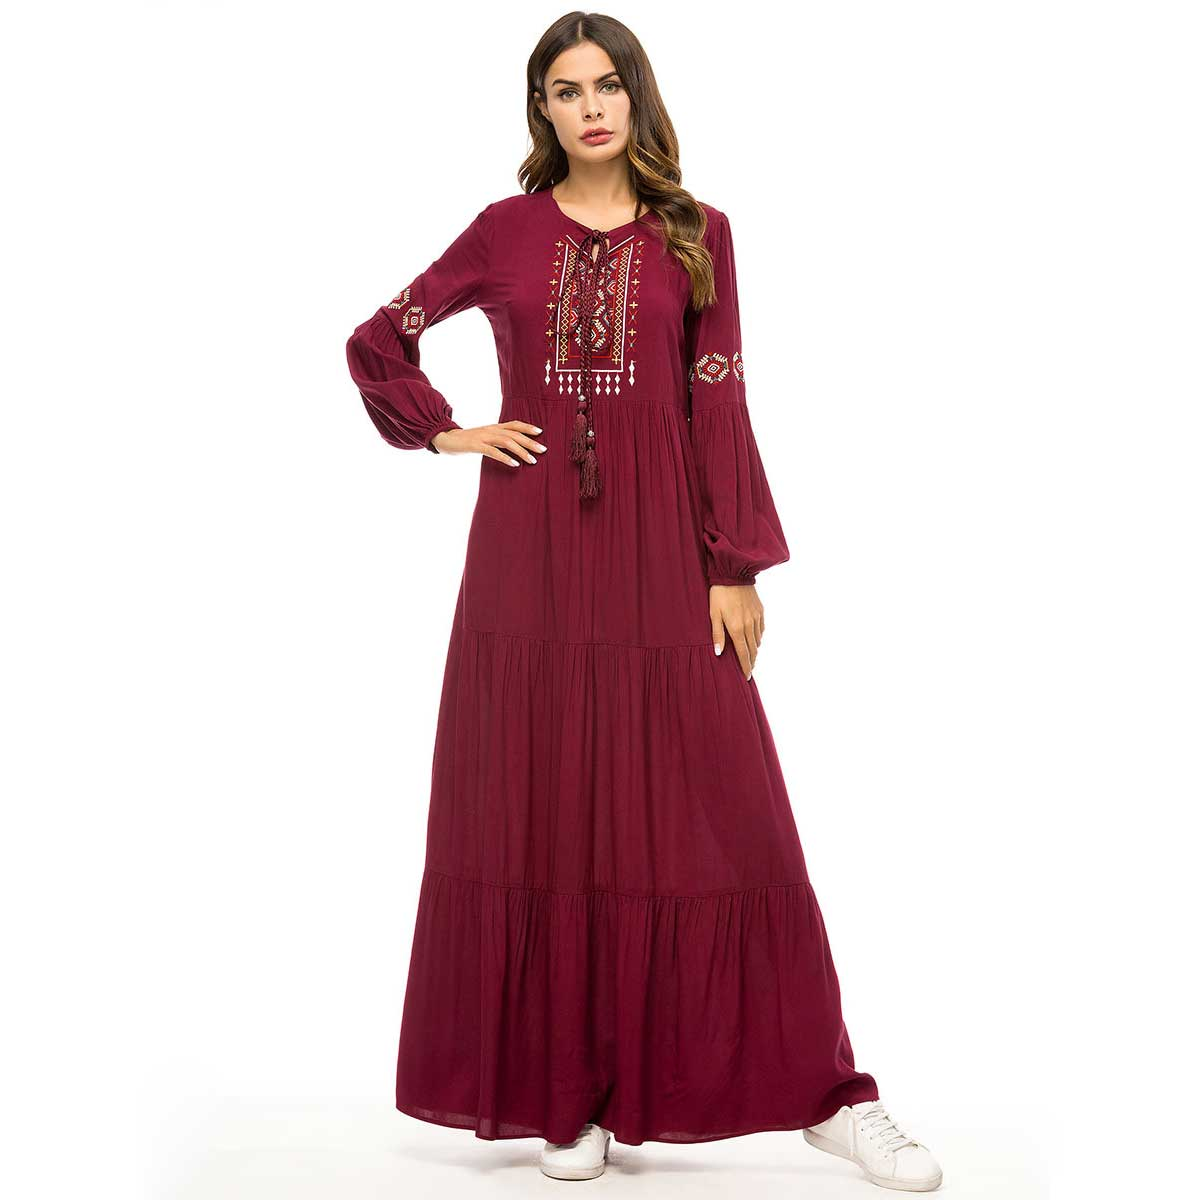 2019 Retro Ethnic Embroidery Maxi Dress Oversized Women Muslim Abaya Arabic Dubai Islamic UAE Pleated Robe Plus Size VKDR1447-in Islamic Clothing from Novelty & Special Use on Aliexpress.com | Alibaba Group